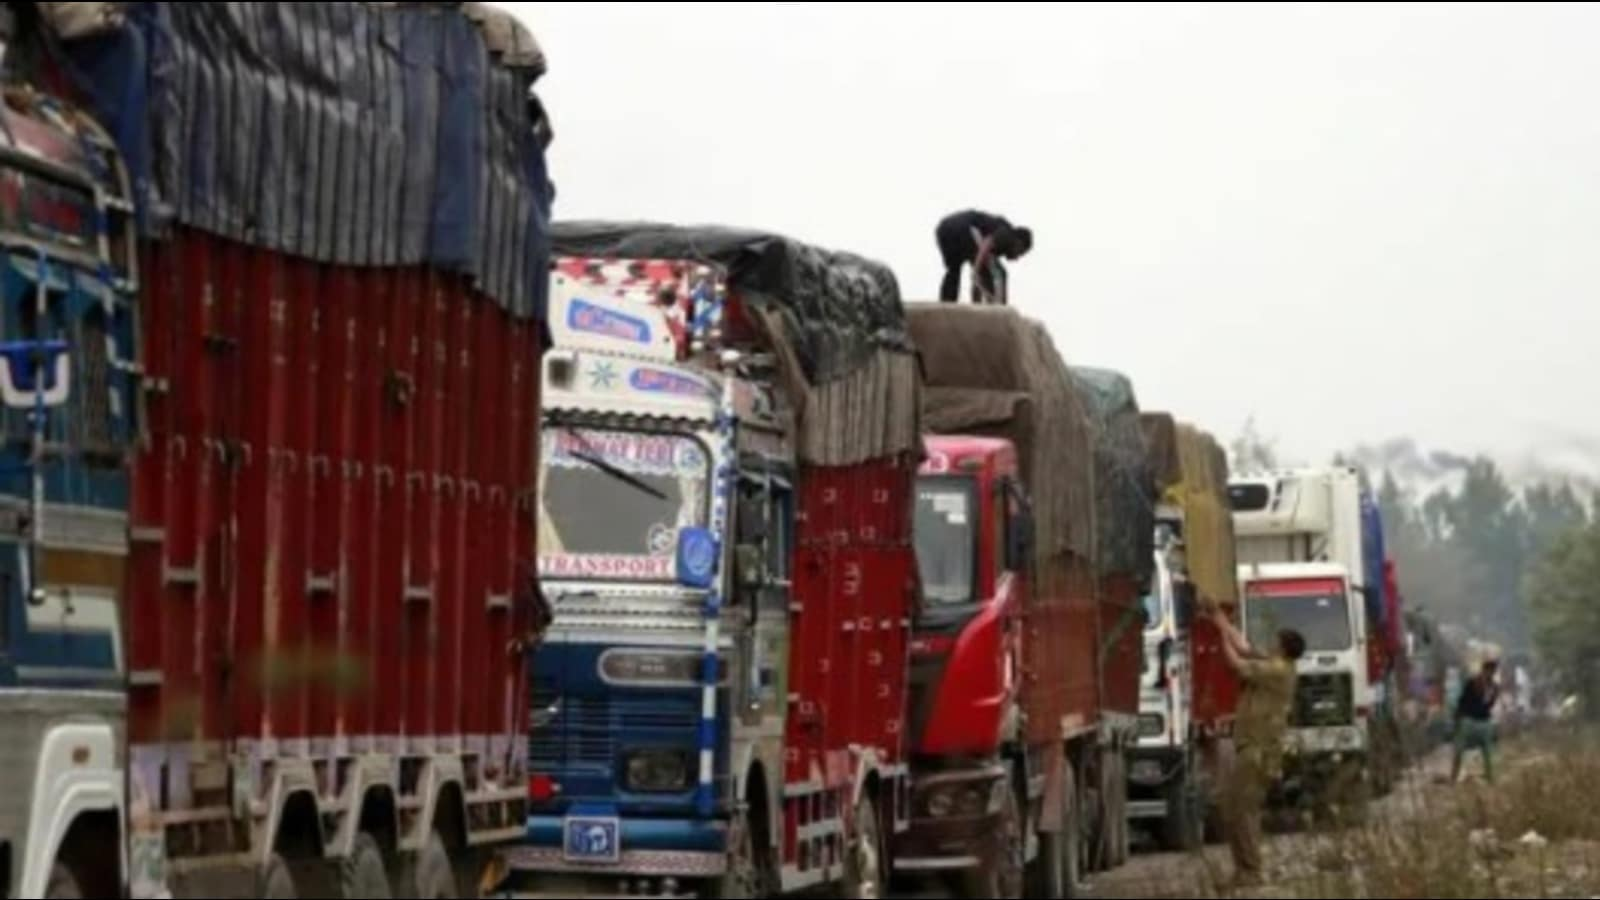 UP transporters threaten fare hike, send proposal to state transport authority